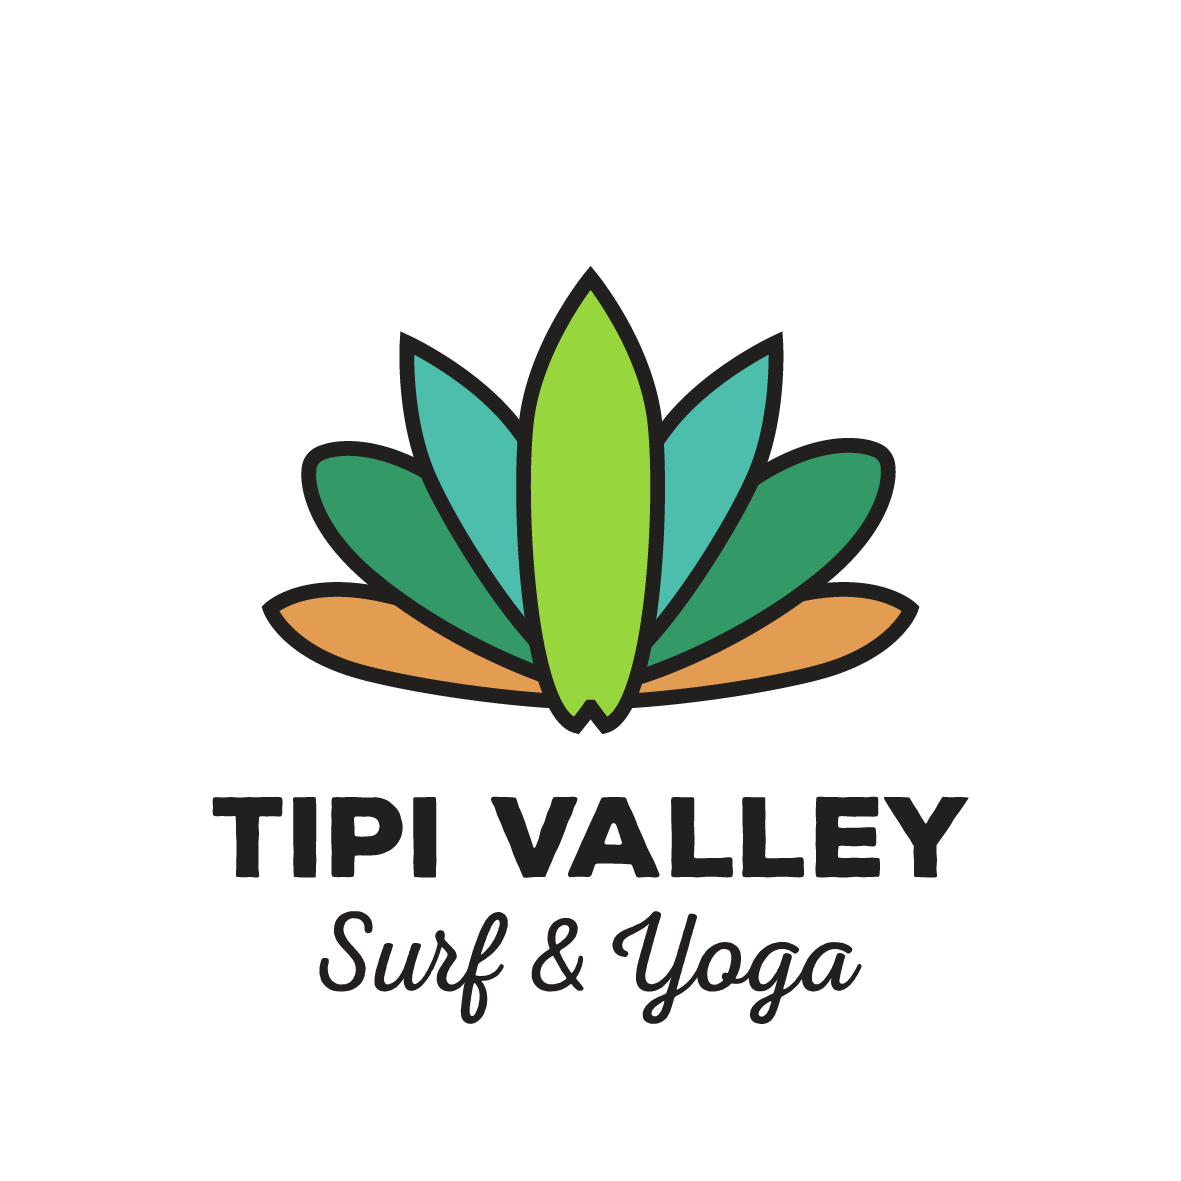 Tipi Valley is an ecological surf and yoga retreat in the western Algarve, Portugal.